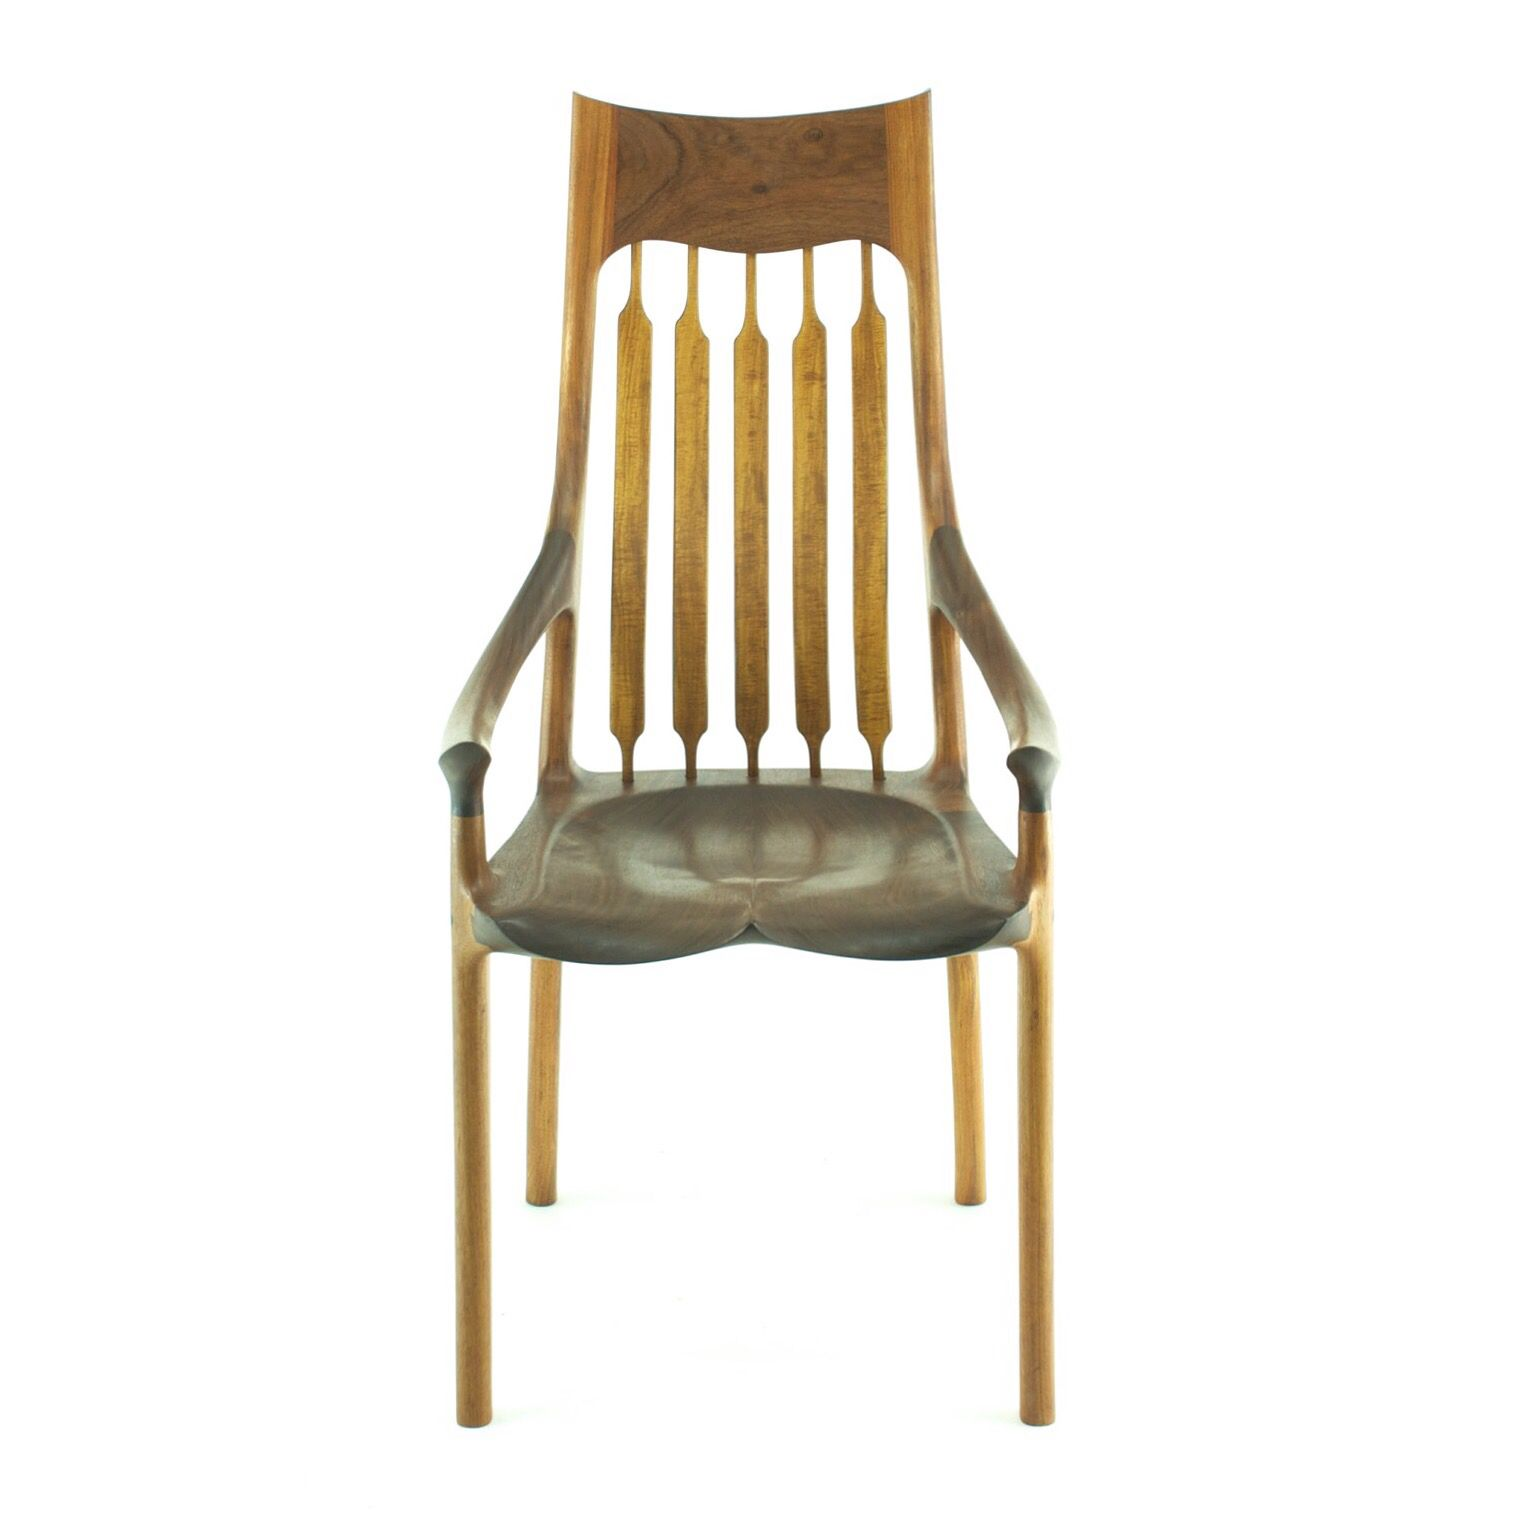 Sculpted dining chair - one of my favourite chairs I build ...